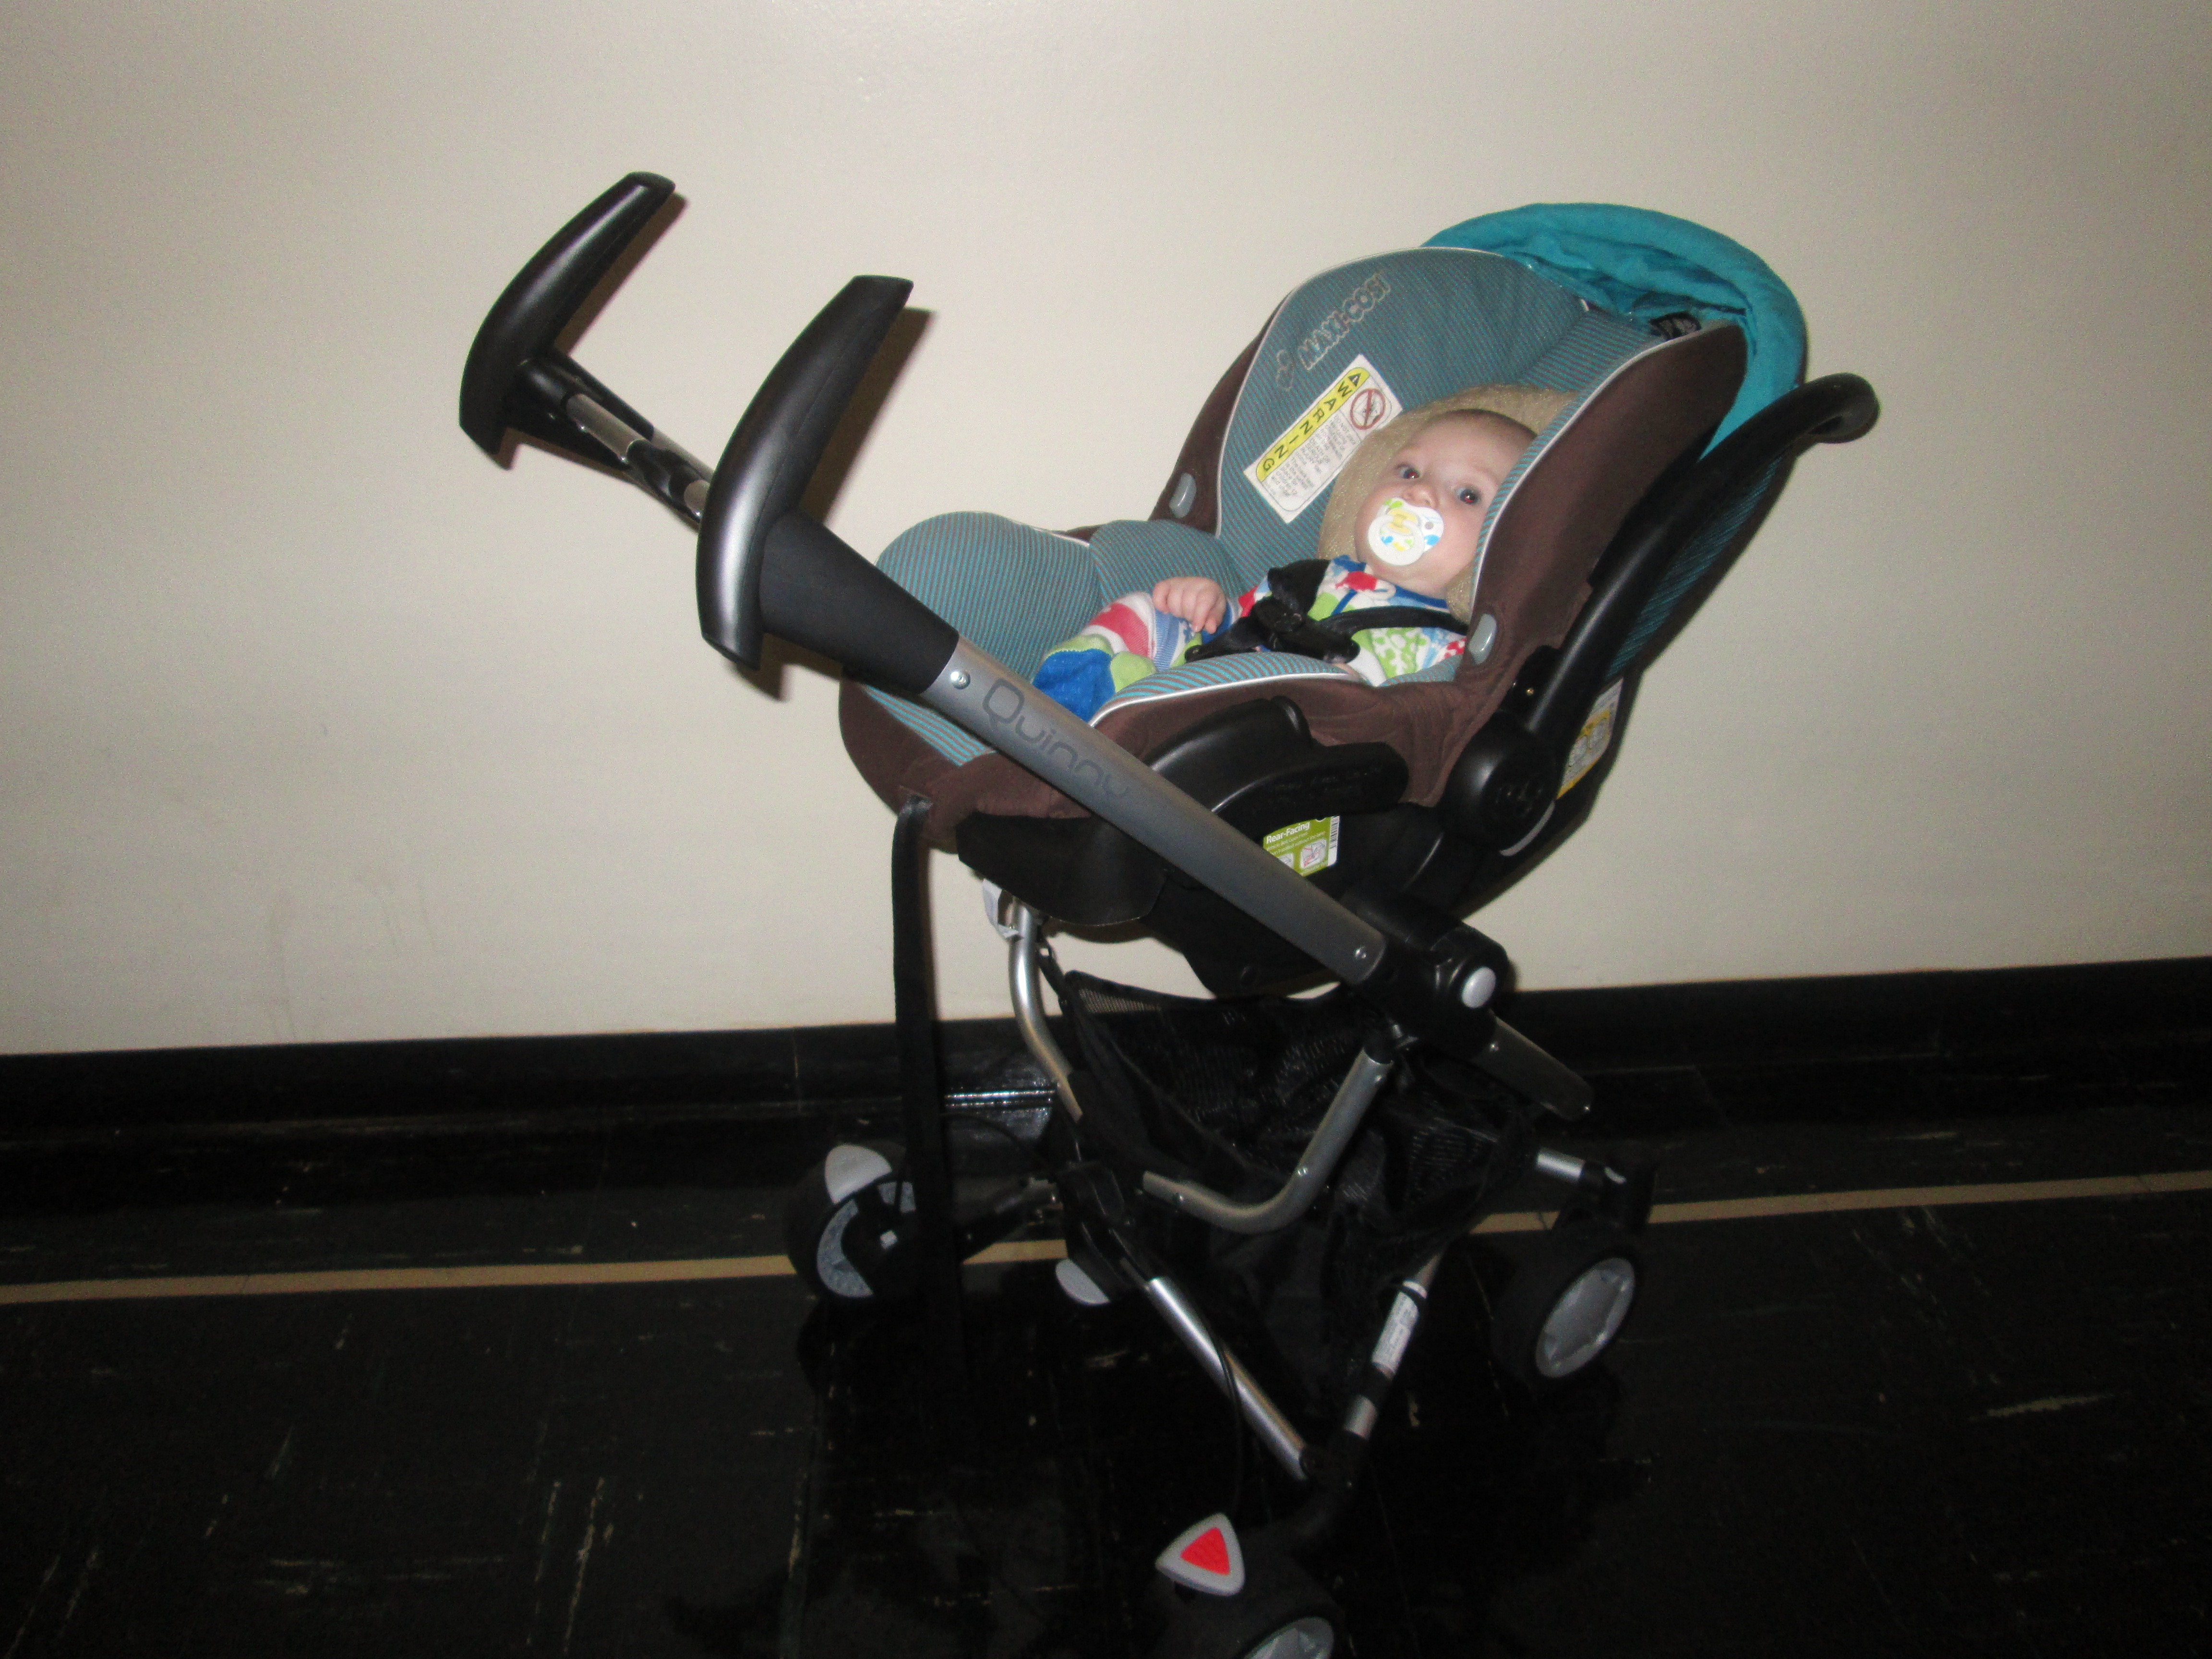 Quinny Zapp Xtra With Folding Seat: A Super-Compact Fold for a Rear